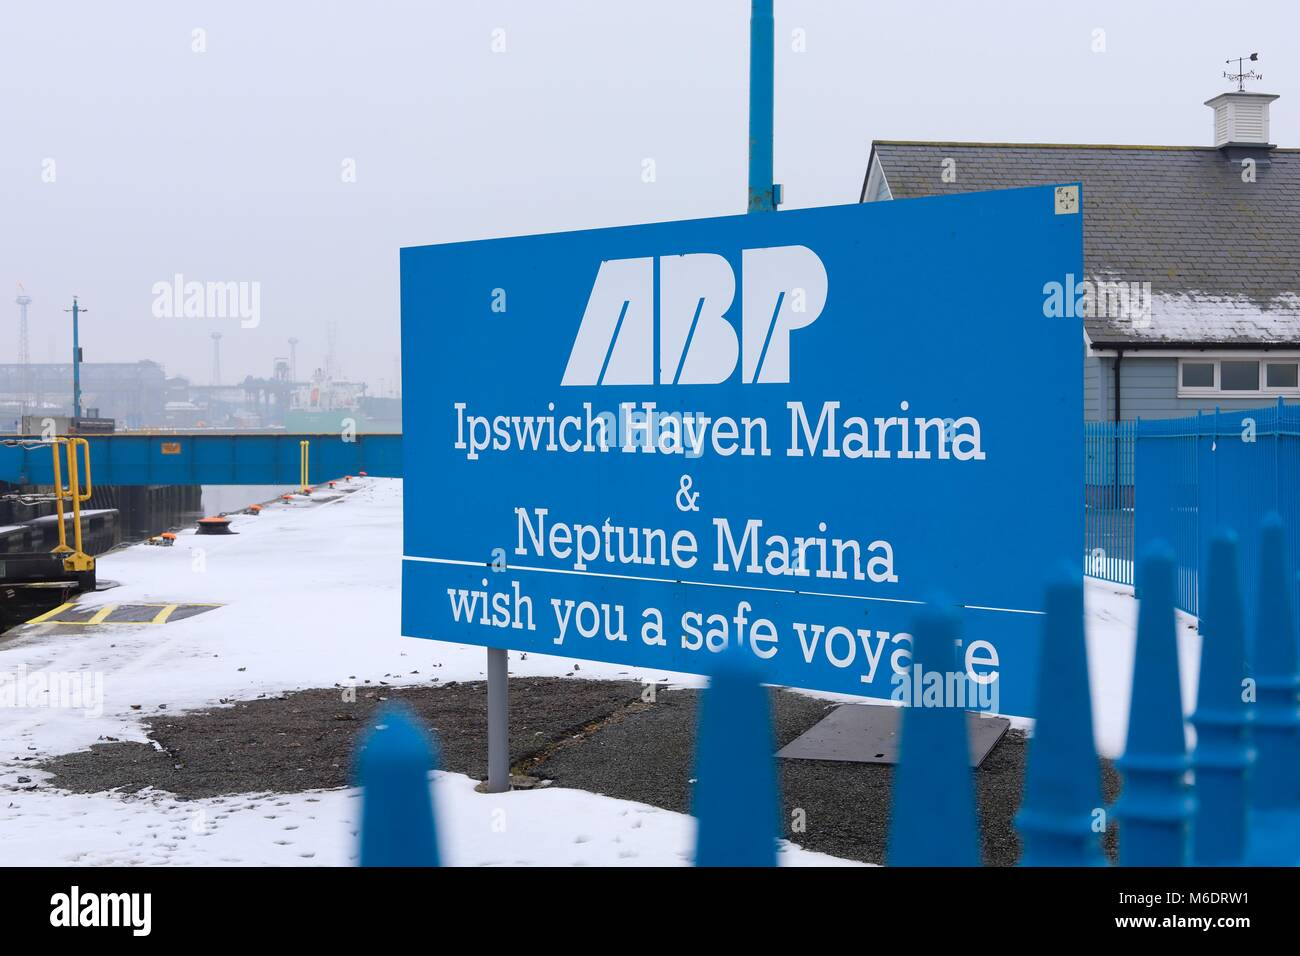 ABP Ipswich Haven Marina and Neptune Marina wish you a safe voyage. Sign at the lock entrance / exit which joins - Stock Image